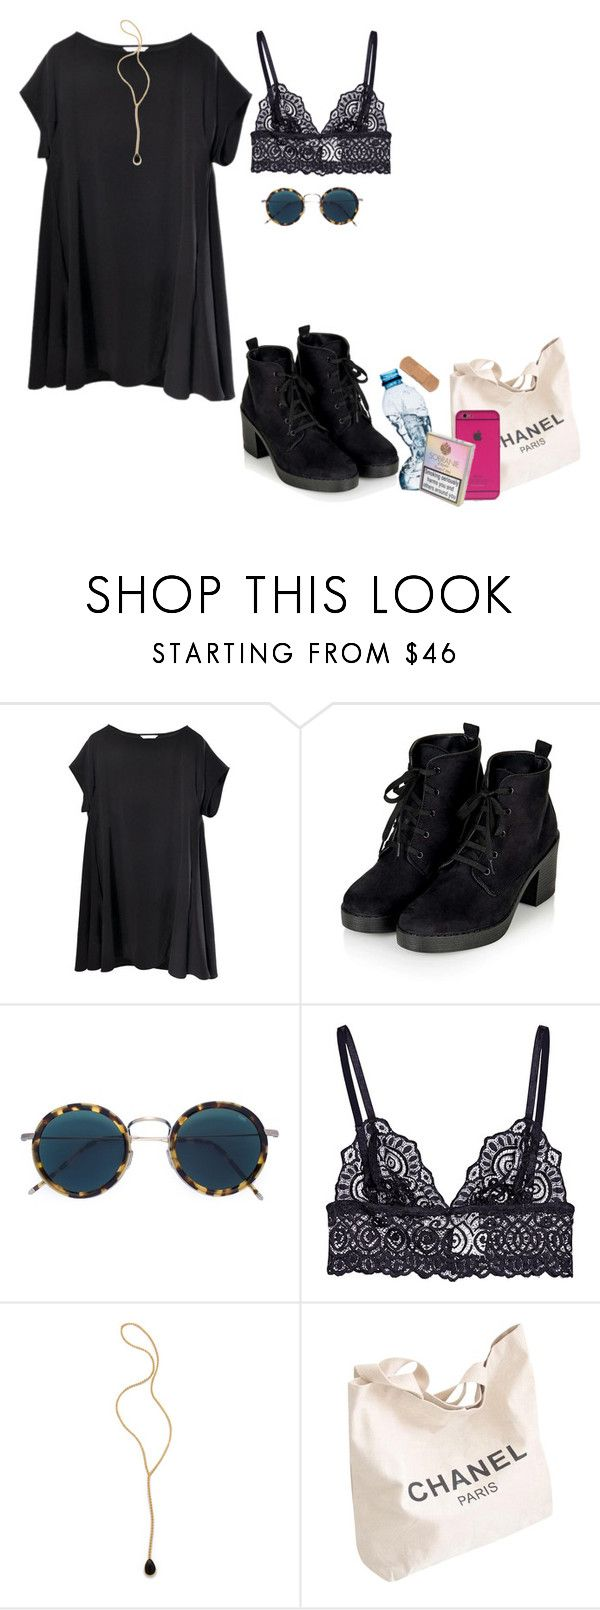 """moderat-out of sight"" by paramorebianka ❤ liked on Polyvore featuring Topshop, Eyevan 7285, Jacquie Aiche, Chanel, women's clothing, women's fashion, women, female, woman and misses"